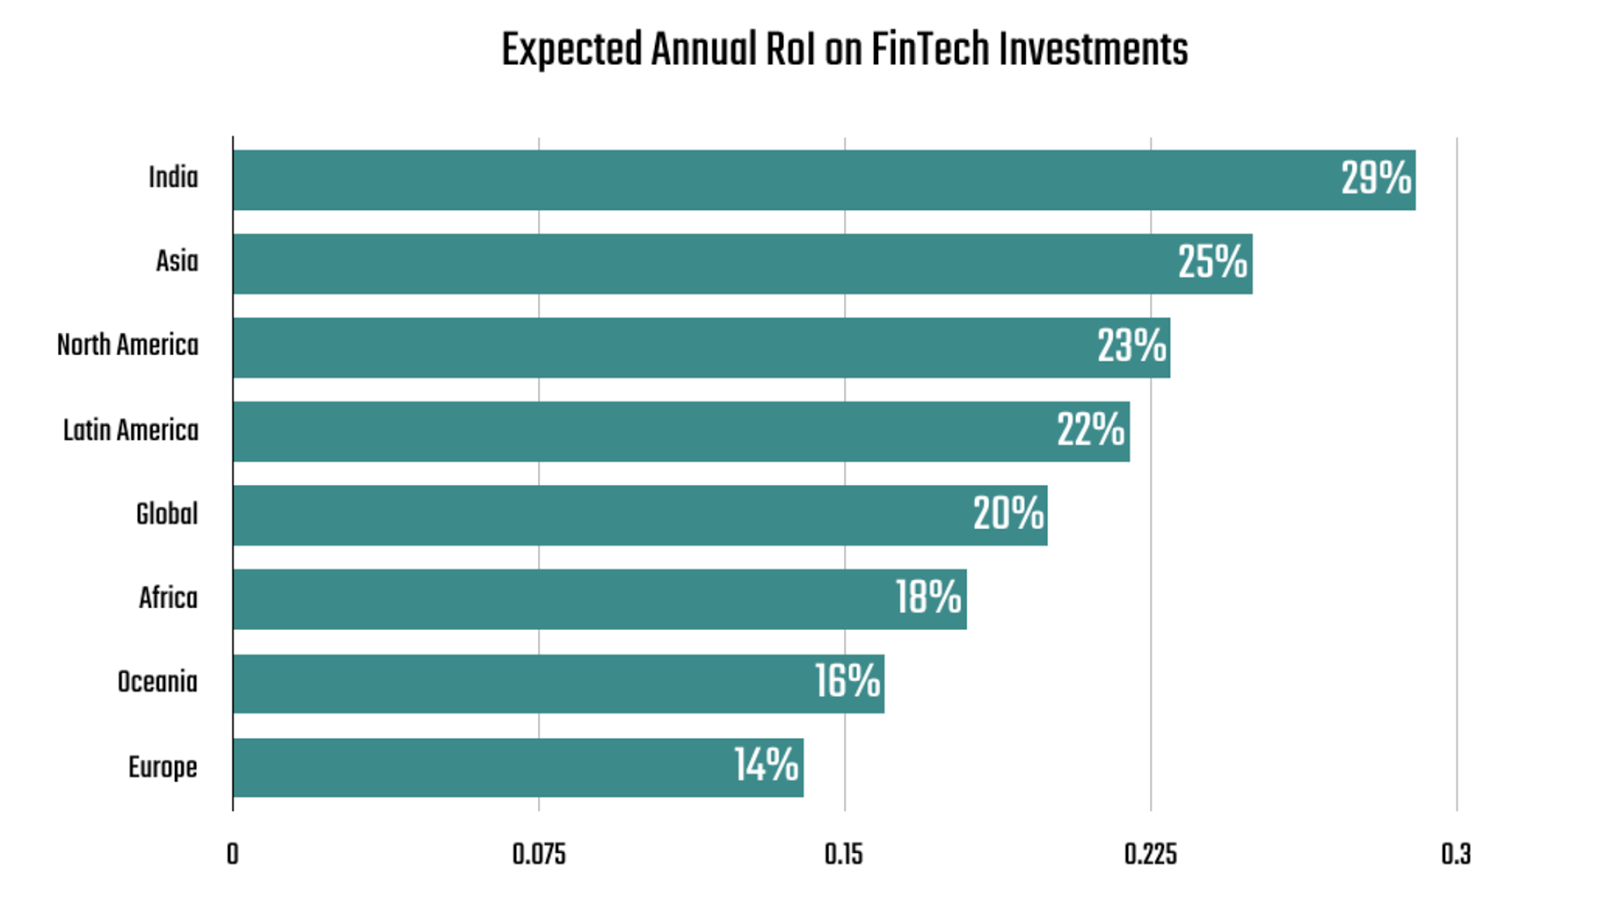 India Offers the Highest Expected ROI on FinTech Projects – 29% Versus the Global Average of 20%